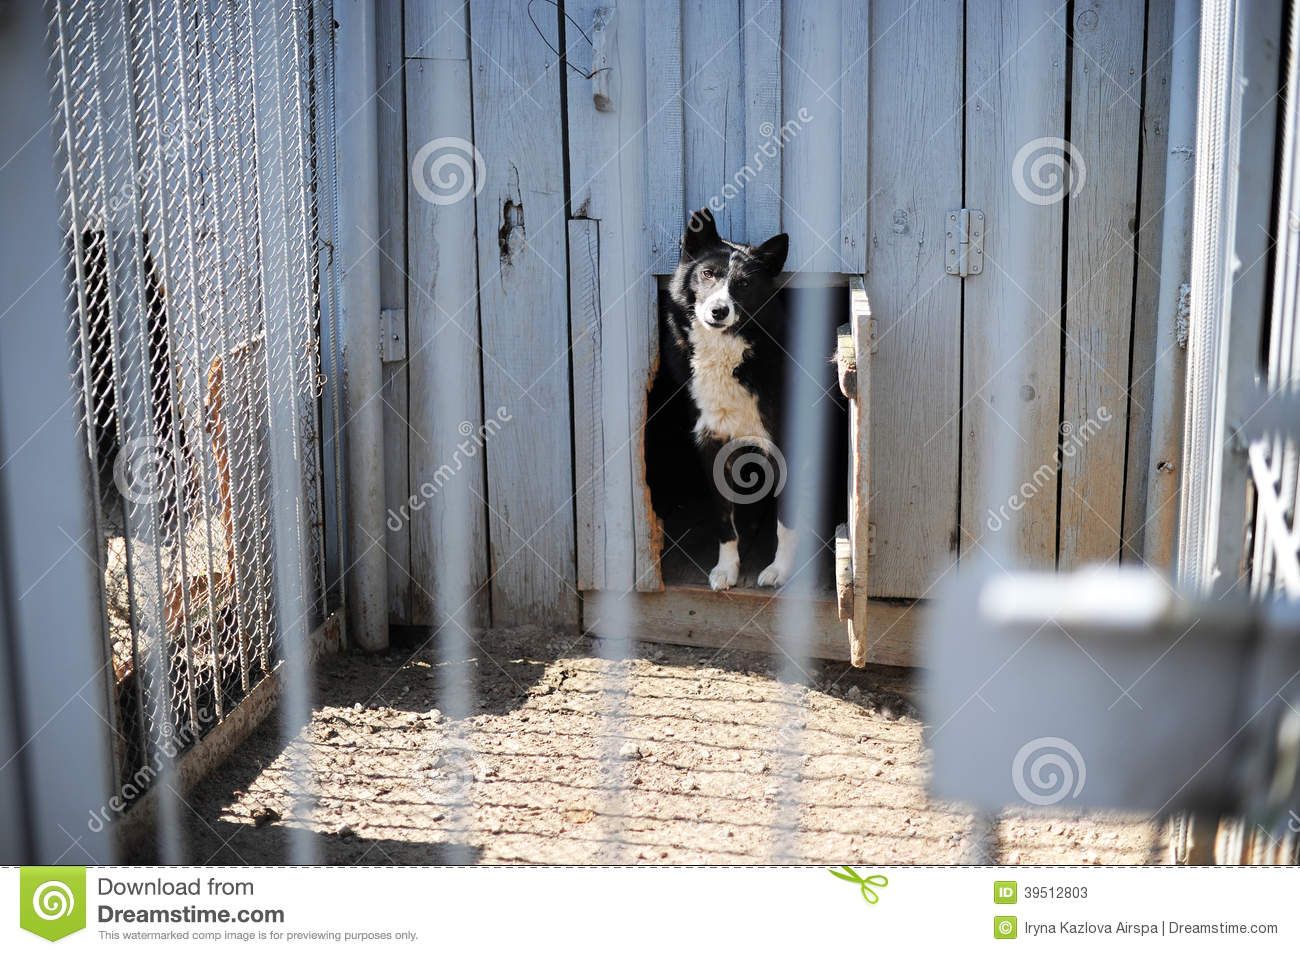 Dog in the open-air cage